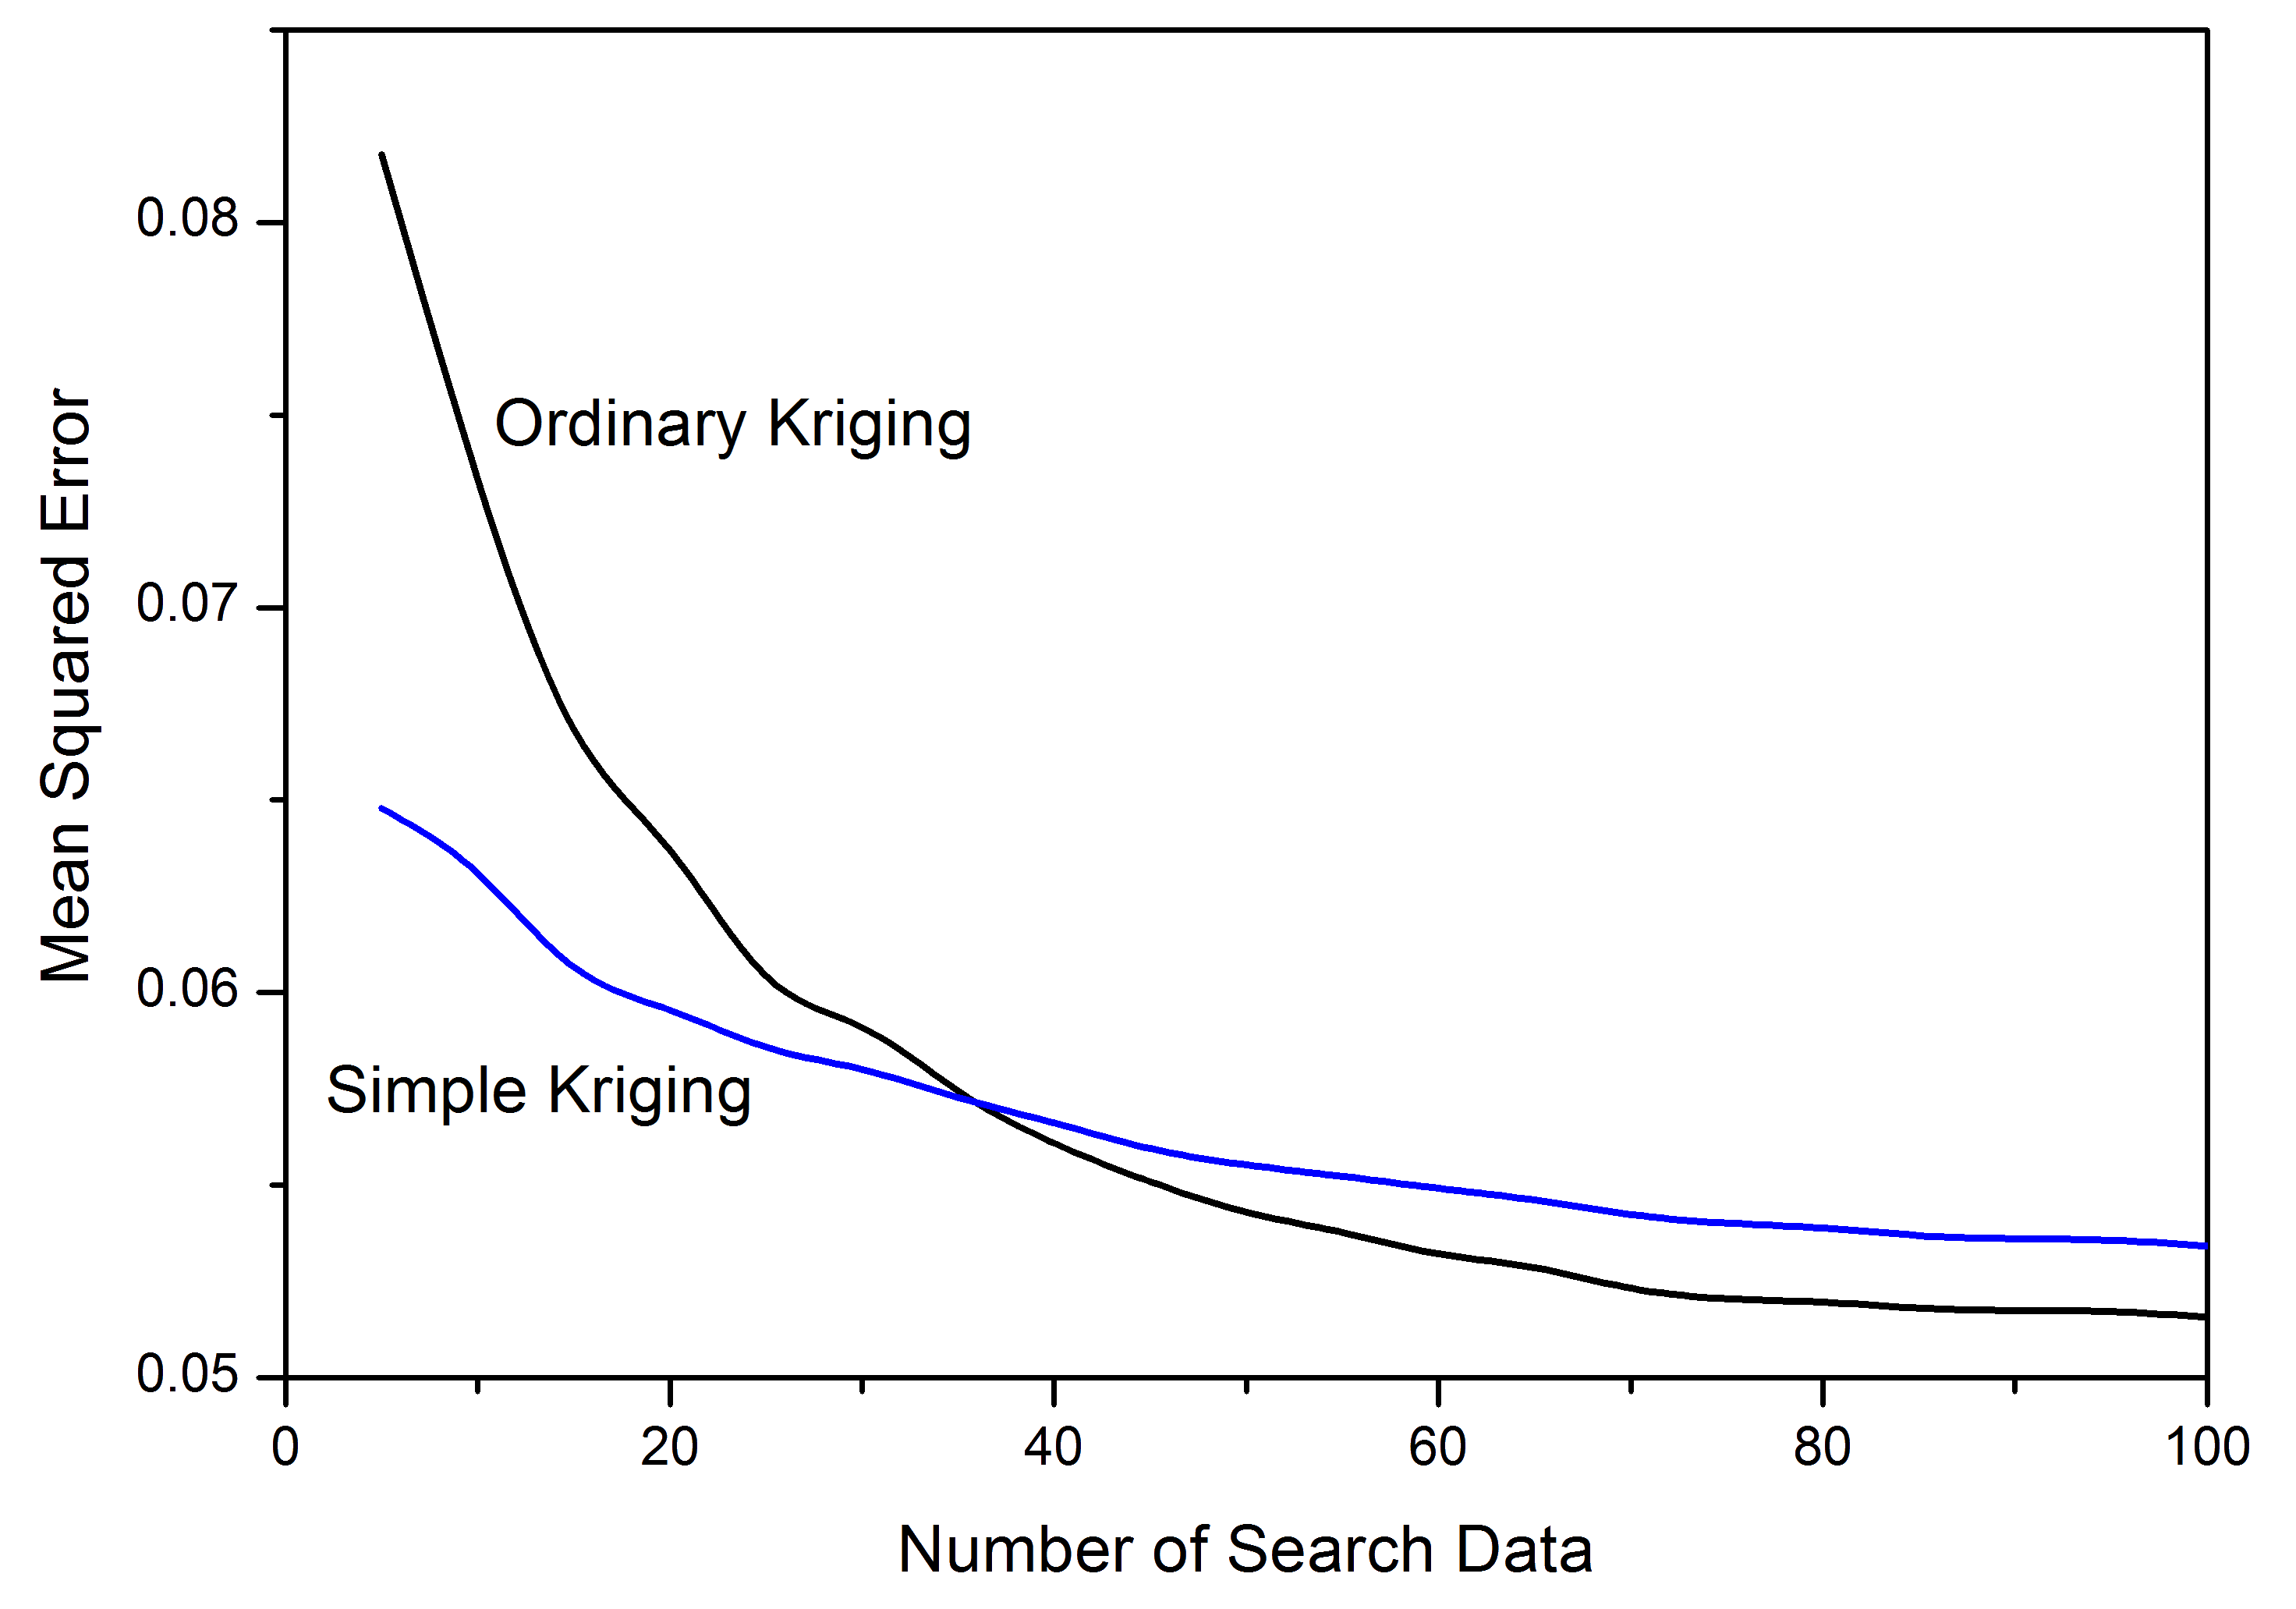 Mean squared error in cross validation as a function of the number of search data included for a copper porphyry deposit, using data from (J. Deutsch, Szymanski, & Deutsch, 2014).